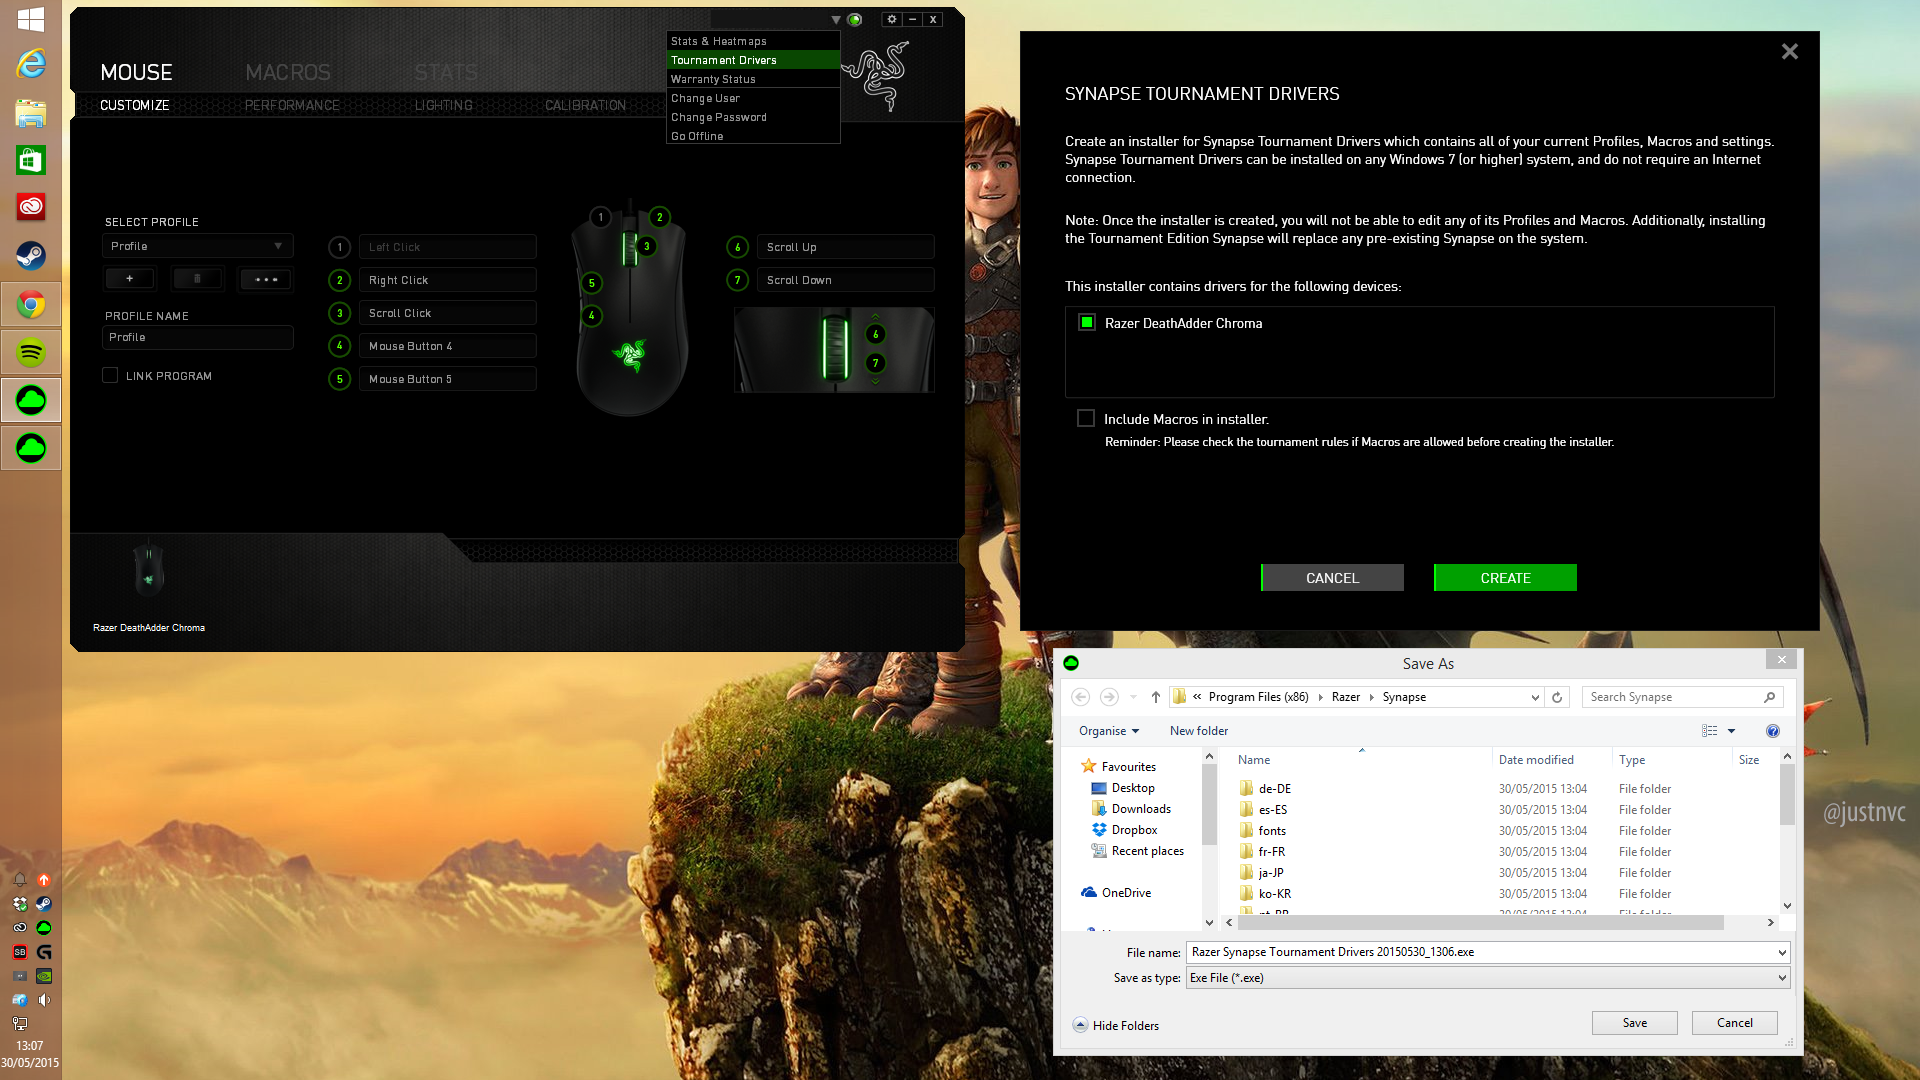 24432bea3af Razer Synapse Framework Bring your settings to offline tournaments with the  new Tournament Drivers! Simply create your own offline installer and bring  your ...